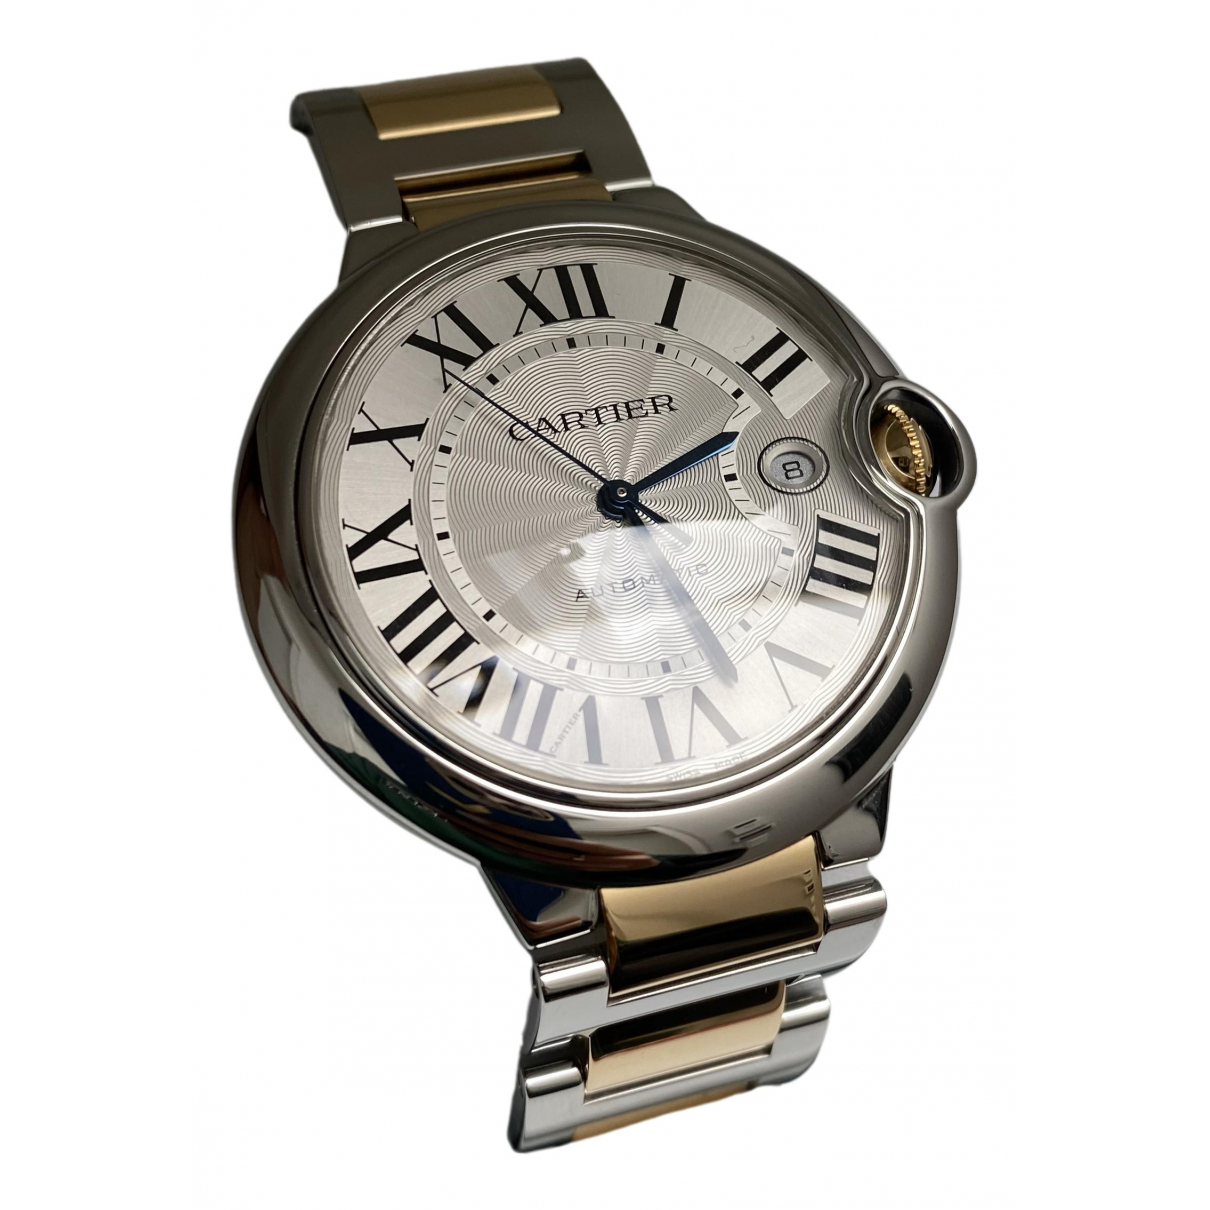 Cartier Ballon bleu Metallic gold and steel Watch for Women